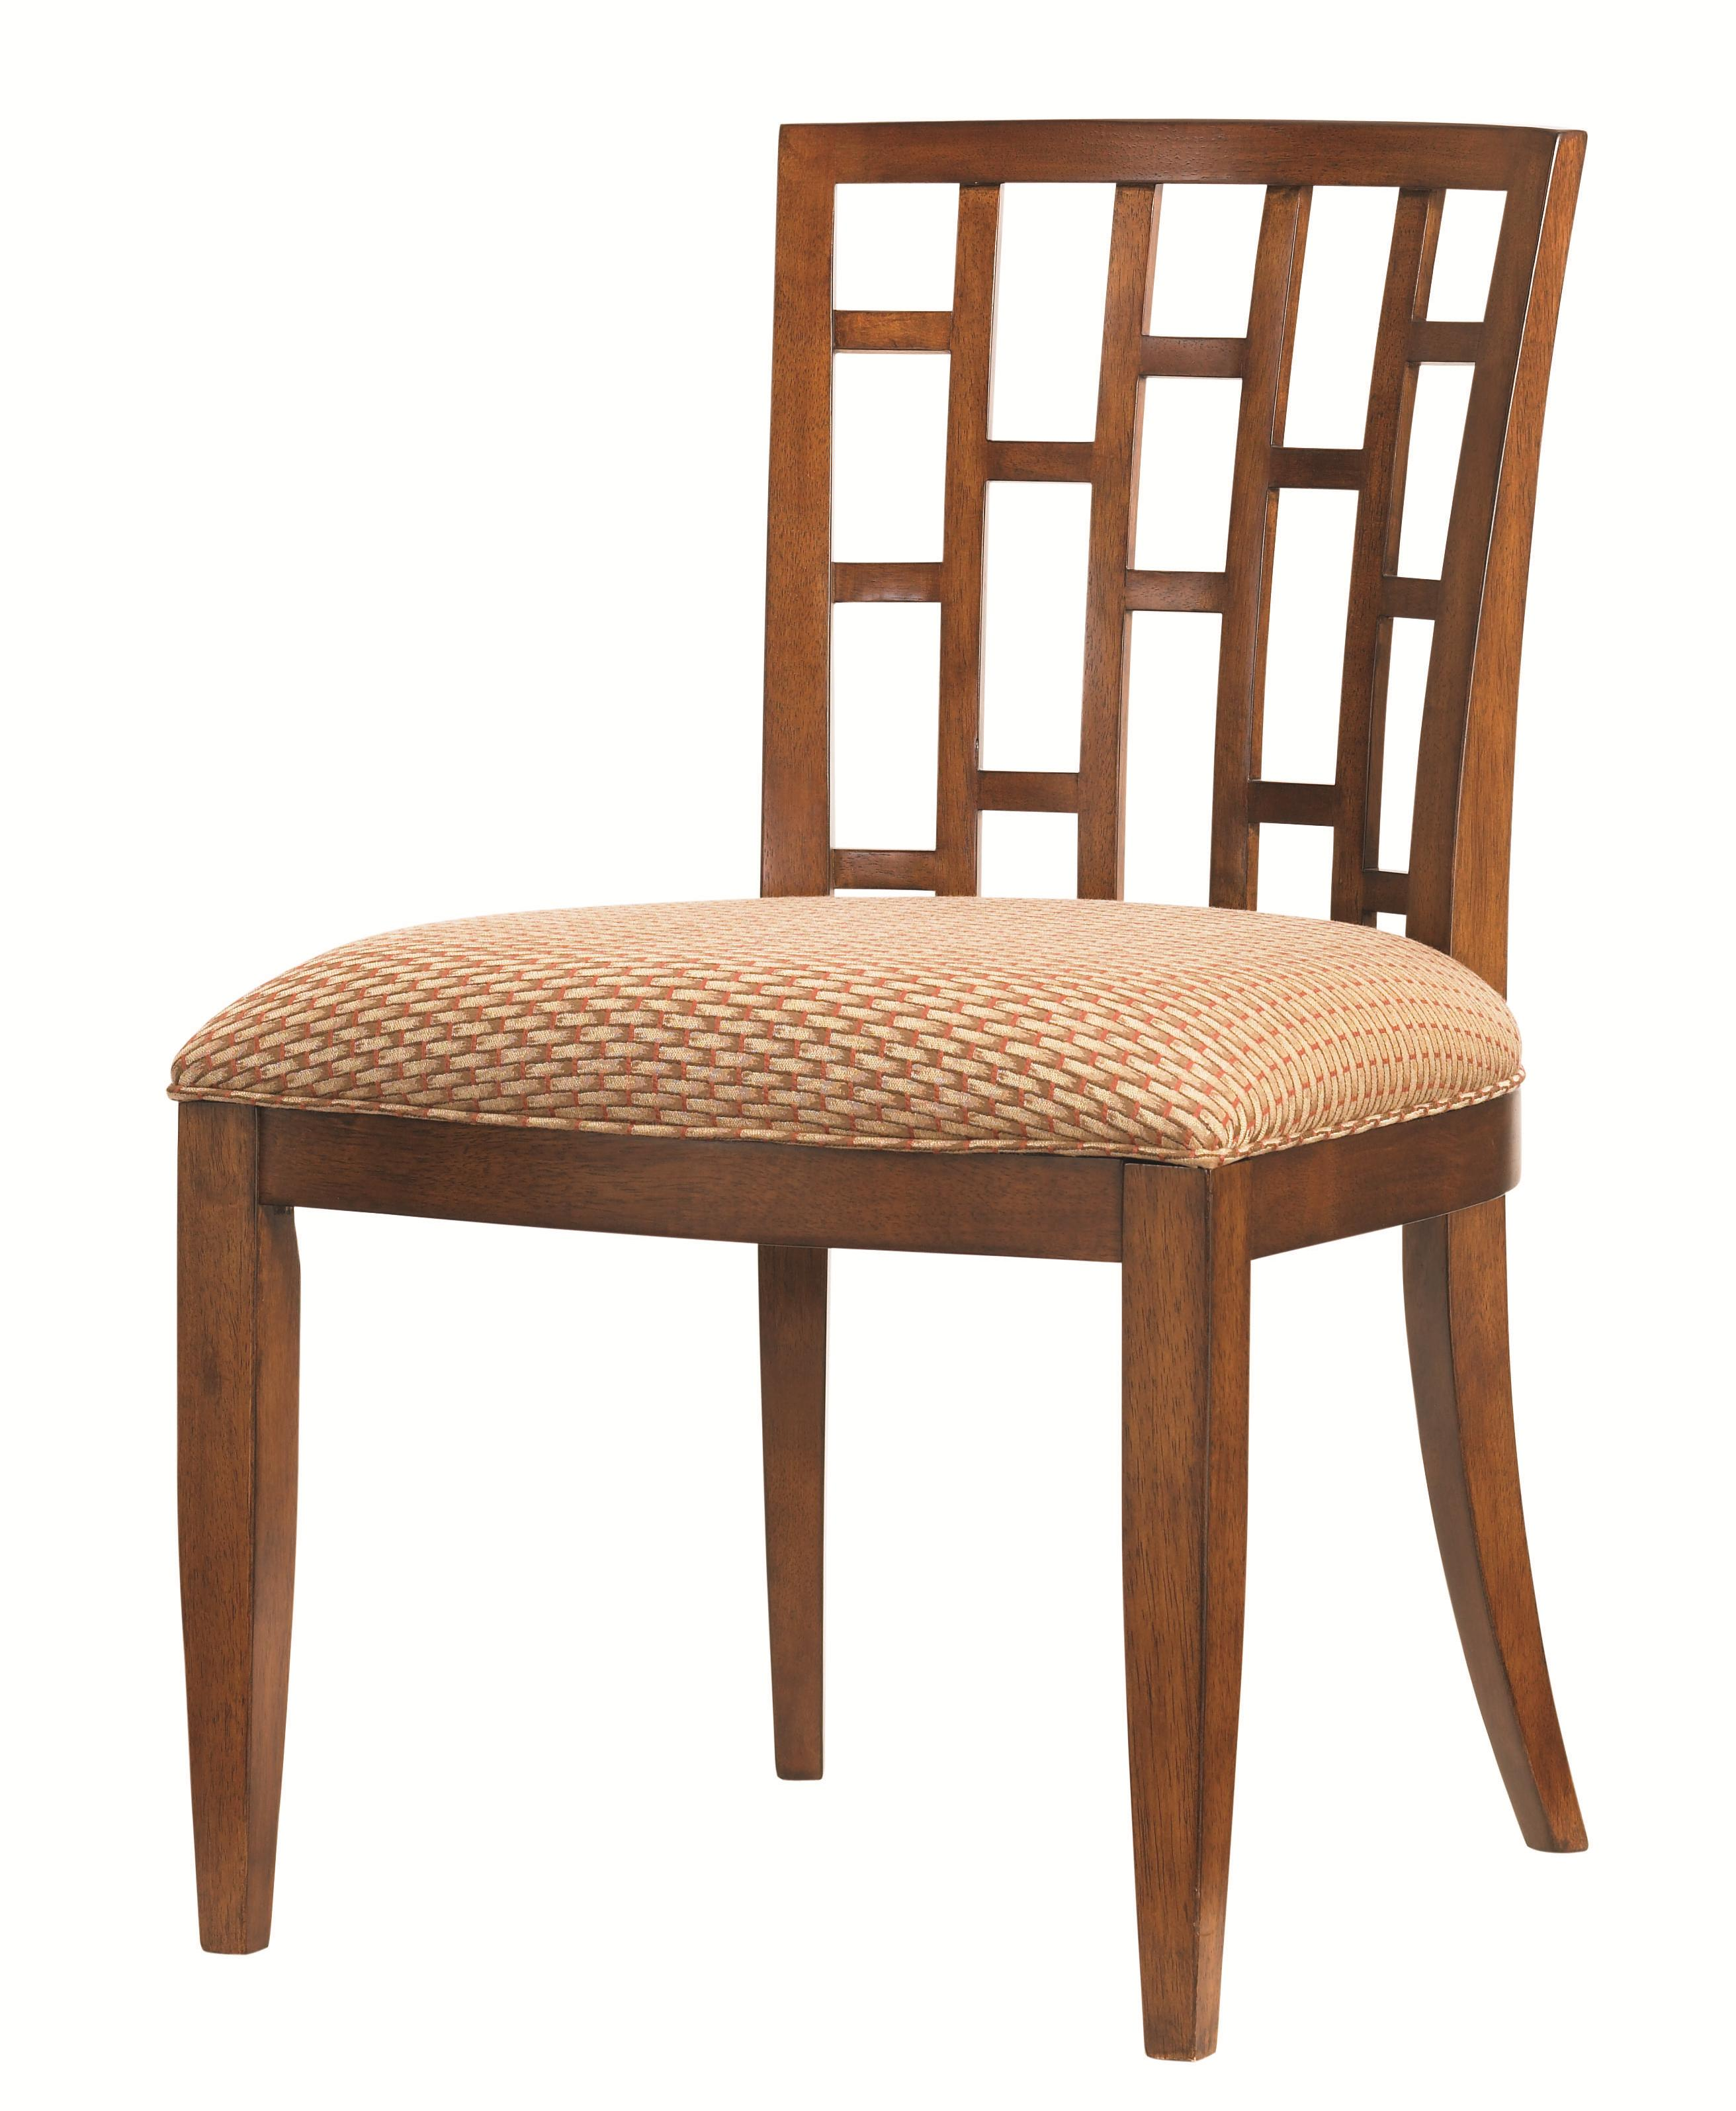 Tommy Bahama Home Ocean Club <b>Quick Ship</b> Lanai Side Chair - Item Number: 536-880-01